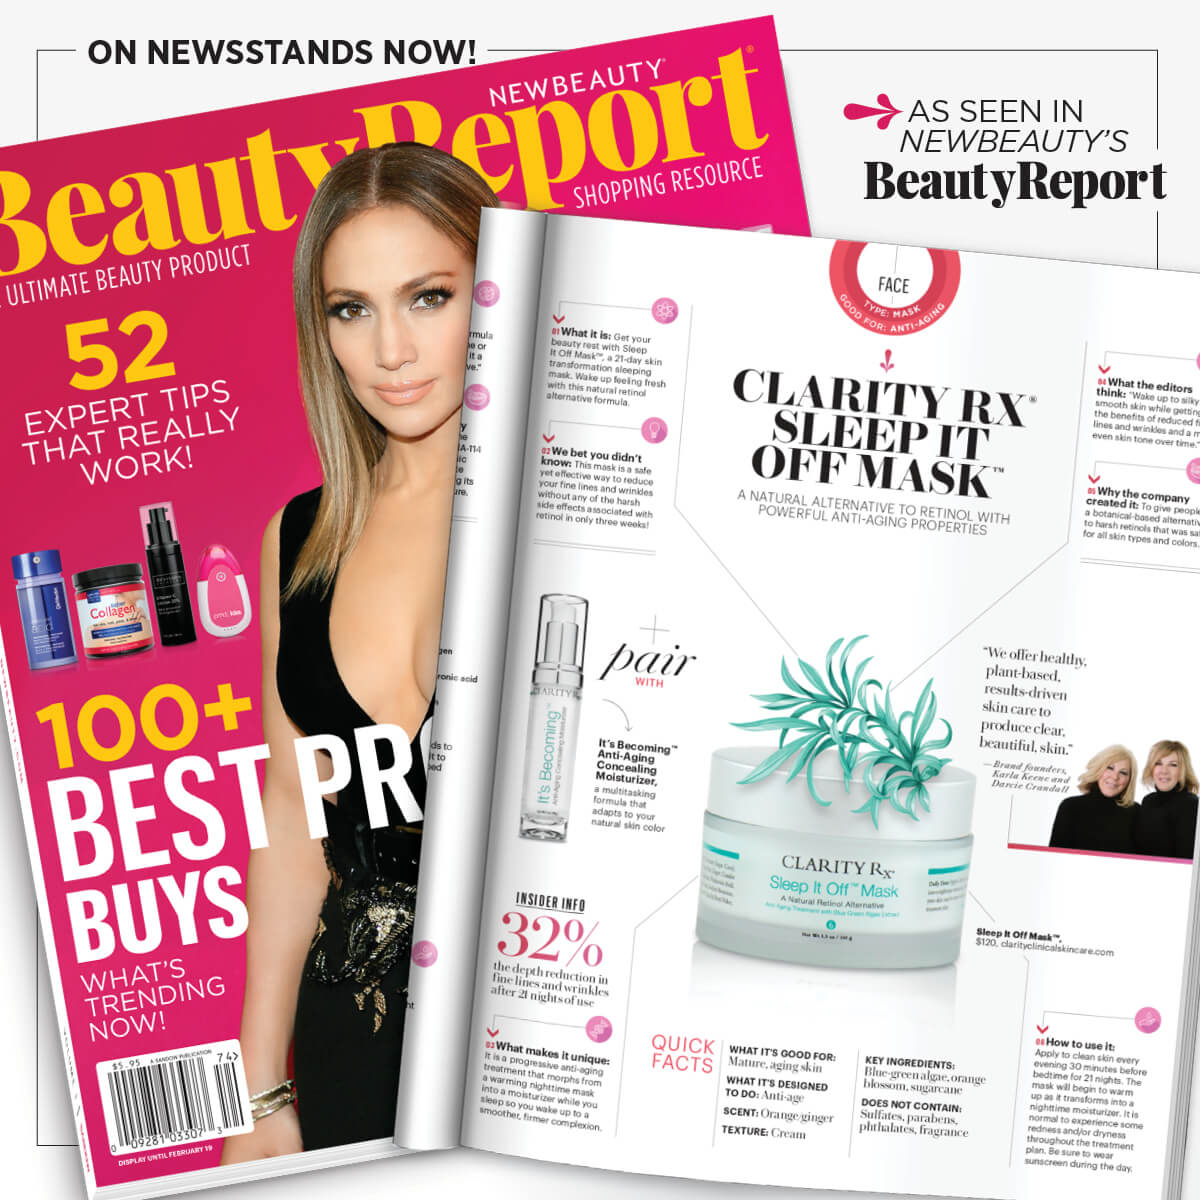 Beauty Report cover and article clipping